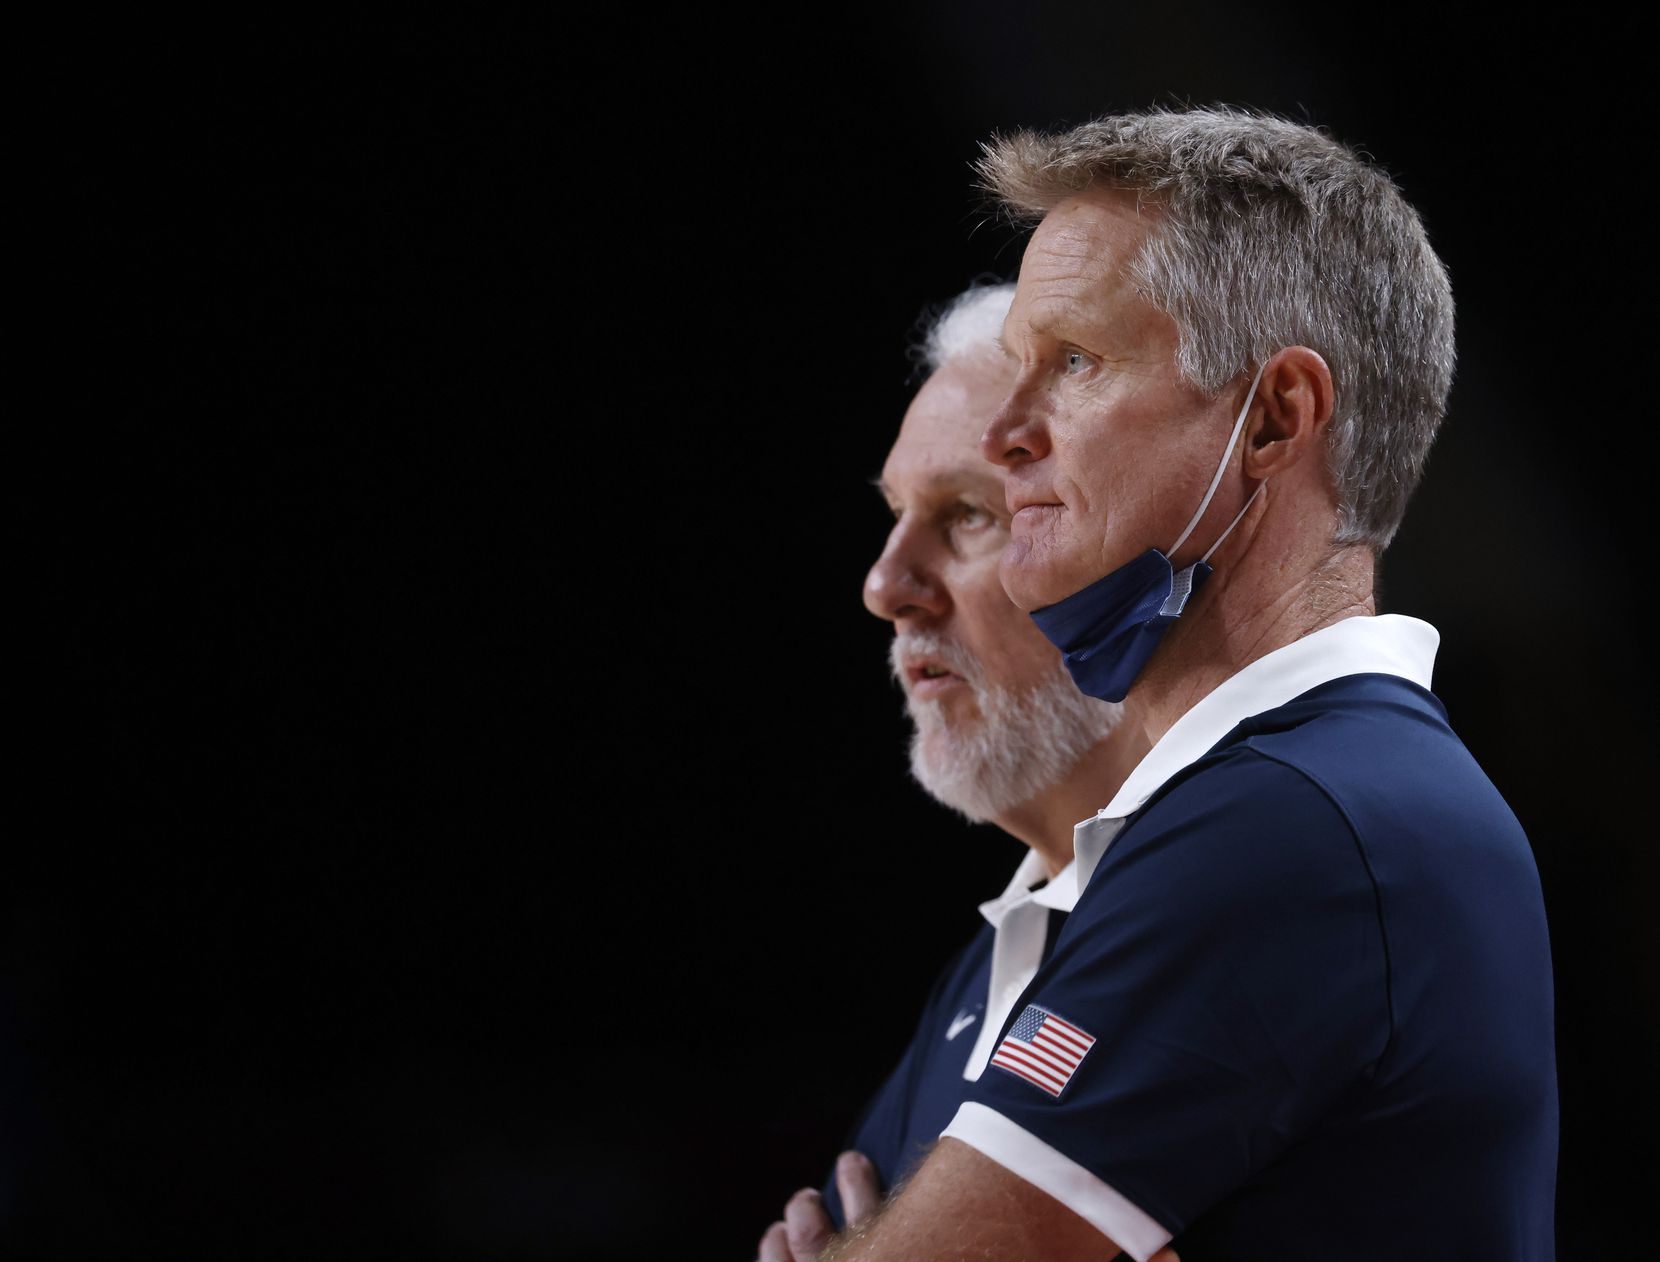 USA's assistant coach Steve Kerr watches the game next to head coach Gregg Popovich as the team plays Australia during the first half of a men's basketball semifinal at the postponed 2020 Tokyo Olympics at Saitama Super Arena, on Thursday, August 5, 2021, in Saitama, Japan. USA defeated Australia 97-78 to advance to the gold medal game. (Vernon Bryant/The Dallas Morning News)